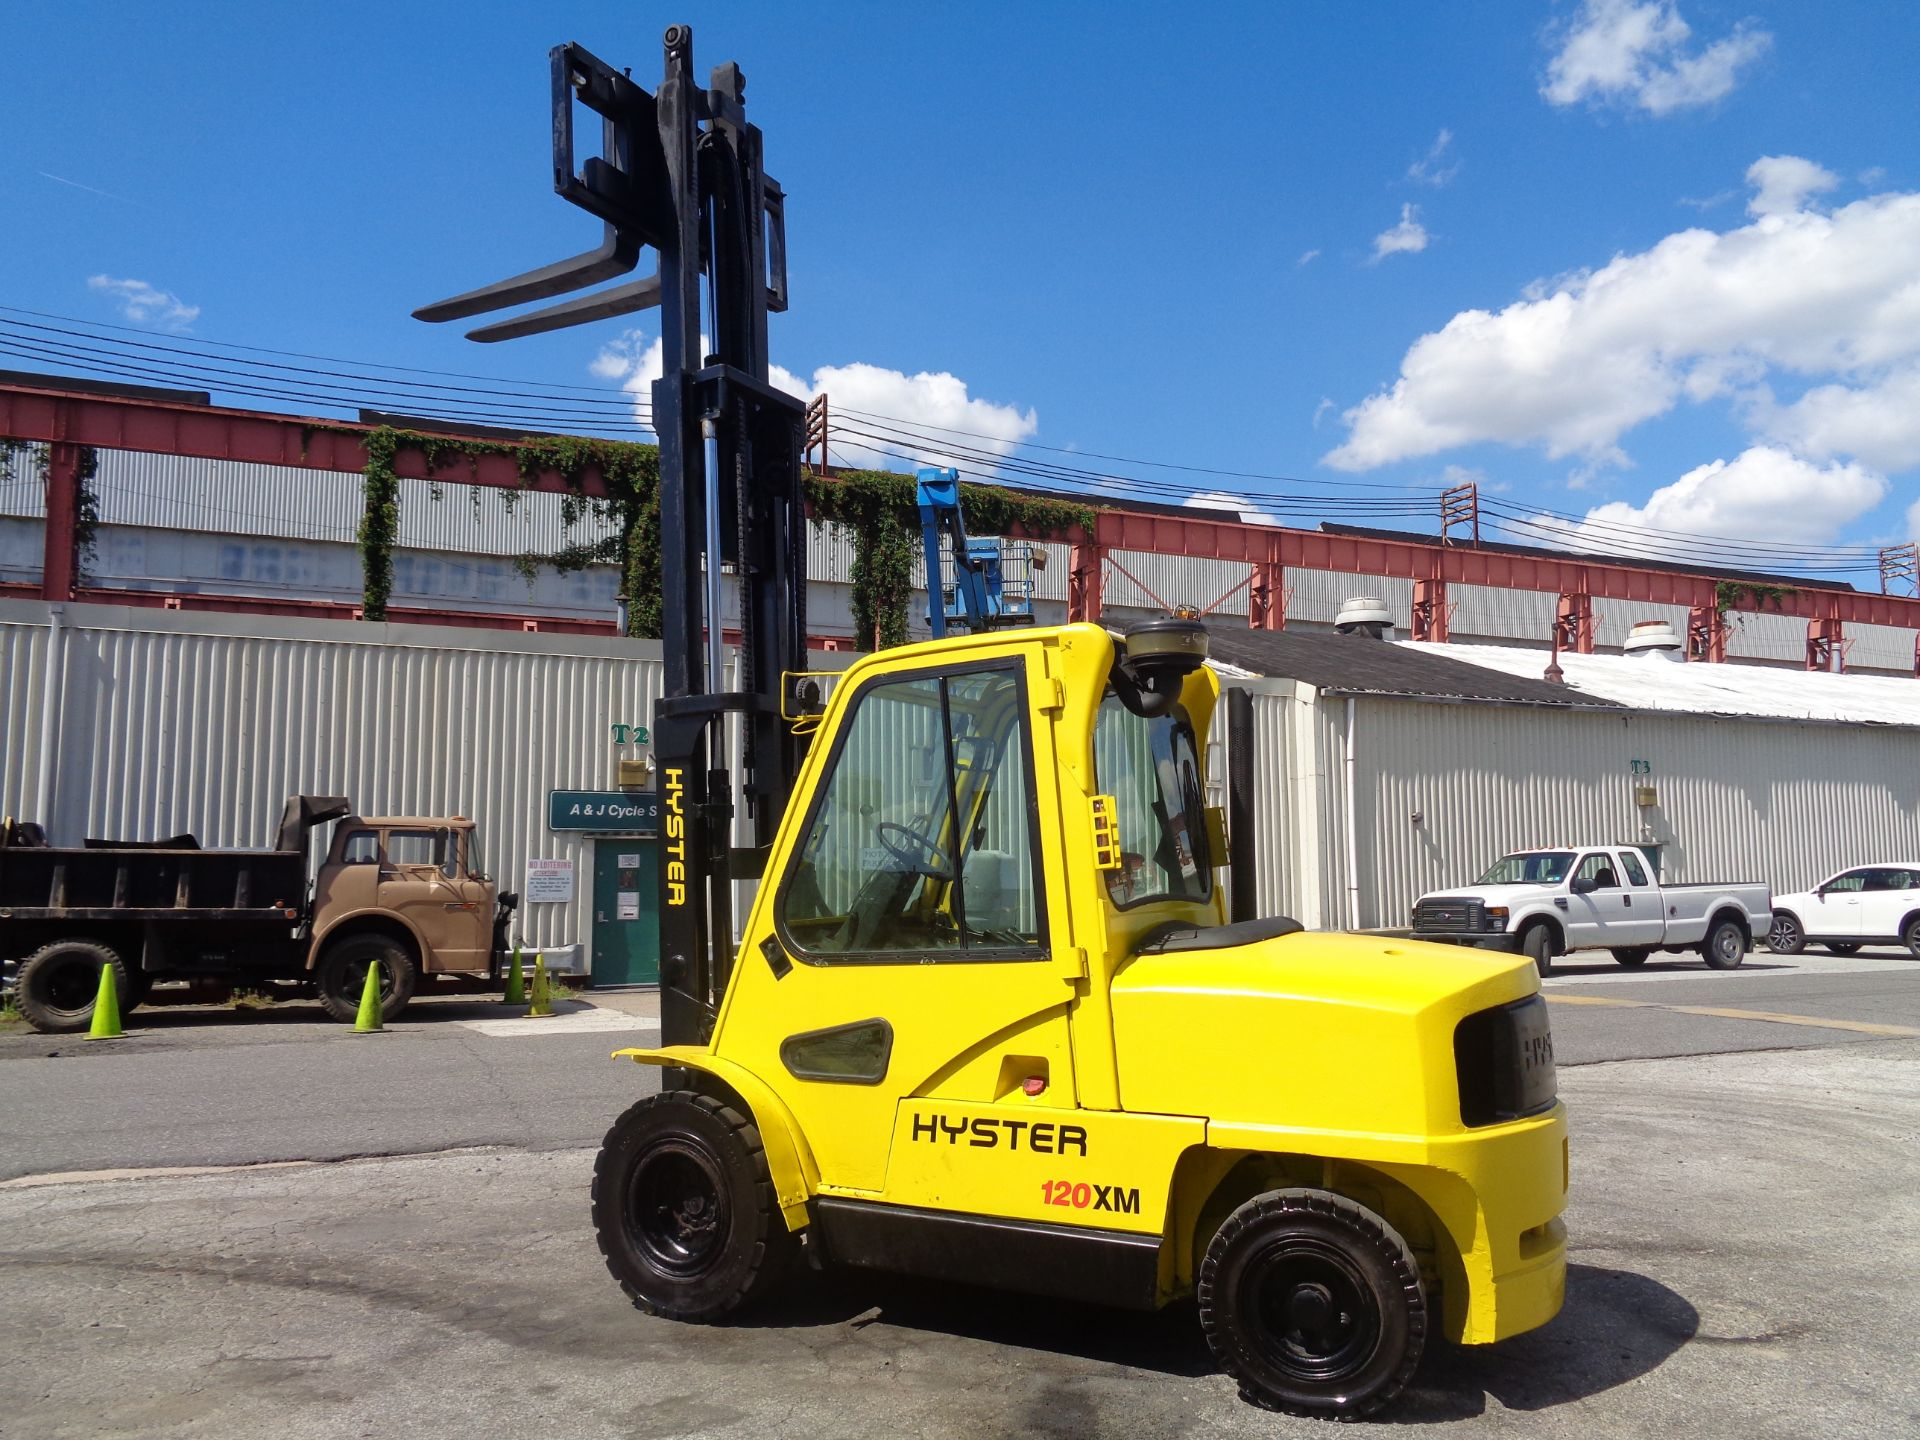 Hyster H120XL 12,000lb Forklift - Image 14 of 15